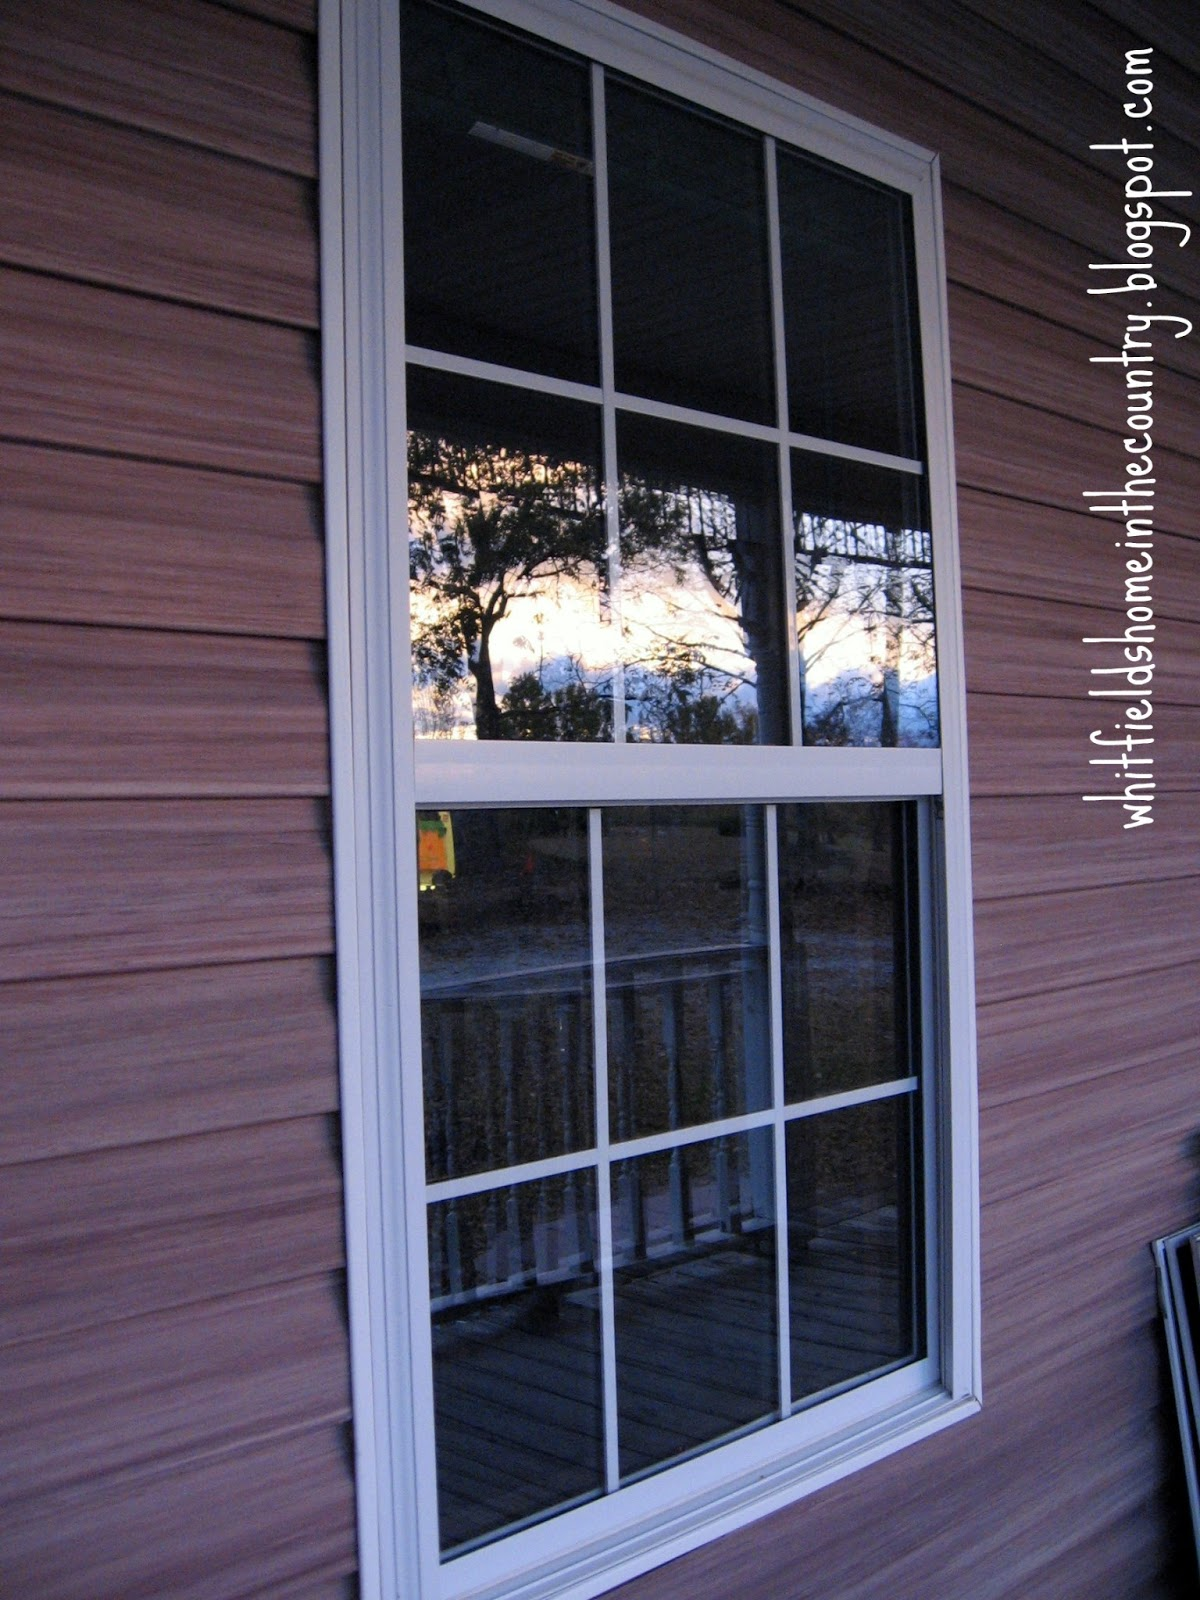 Whitfield's Home ♥ In The Country ~: Homemade Outdoor Window Cleaner